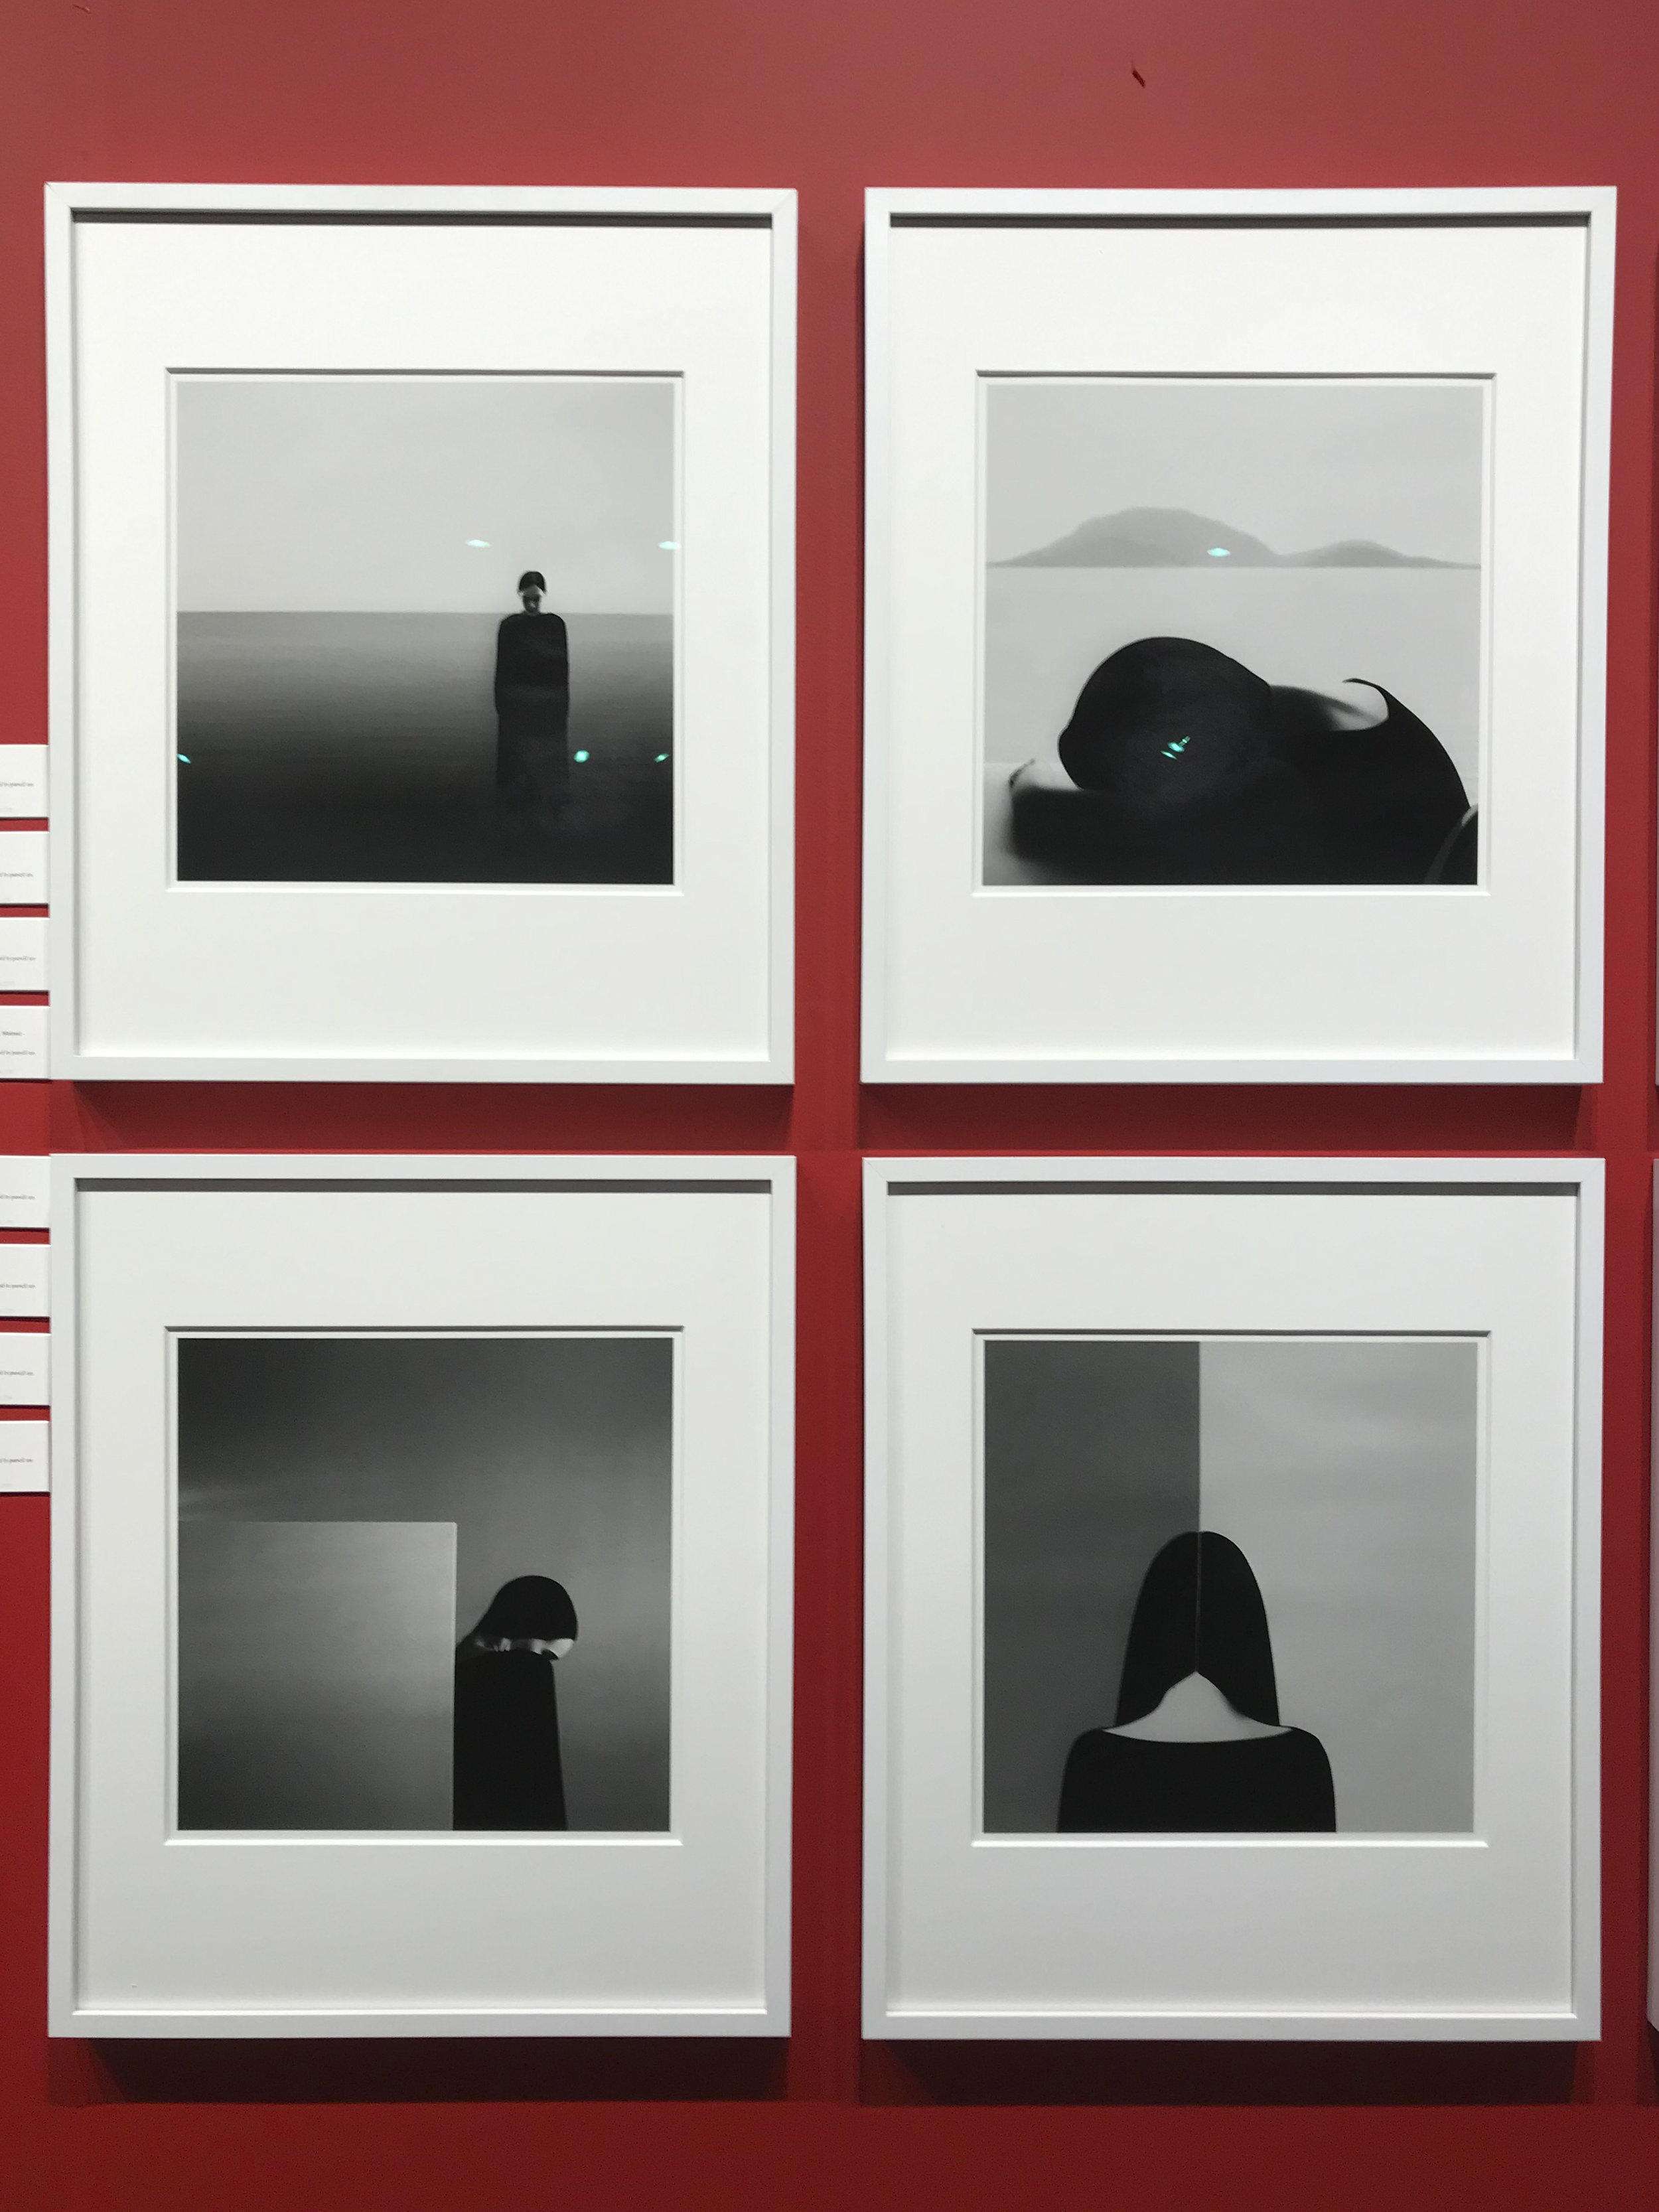 Noell Oszvald, Each piece is  Untitled , 2013-15, gelatin silver print, 14 x 14 inches